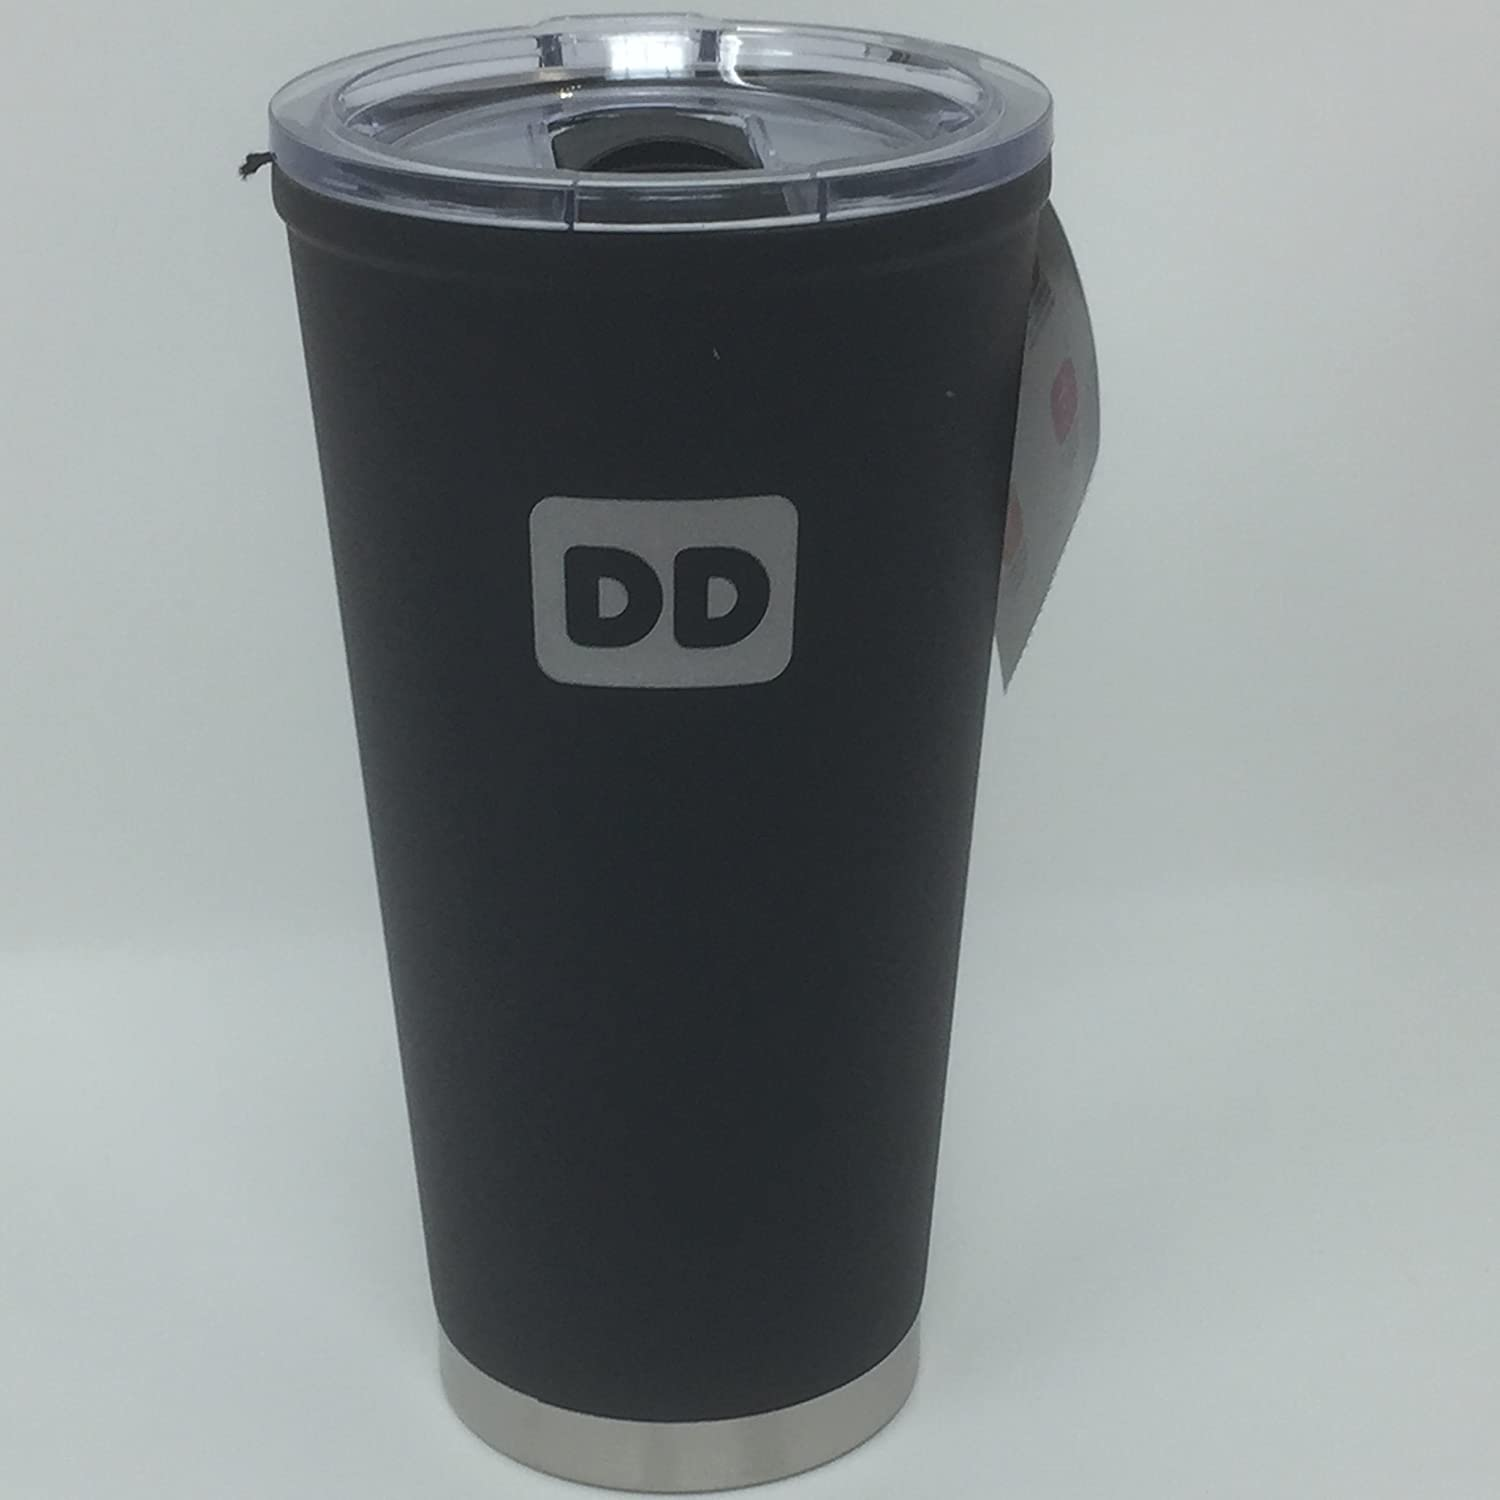 d290fff2c62 Amazon.com: Dunkin Donuts Matte Black 20 oz Stainless Steel Travel Mug  Tumbler with Lid: Kitchen & Dining